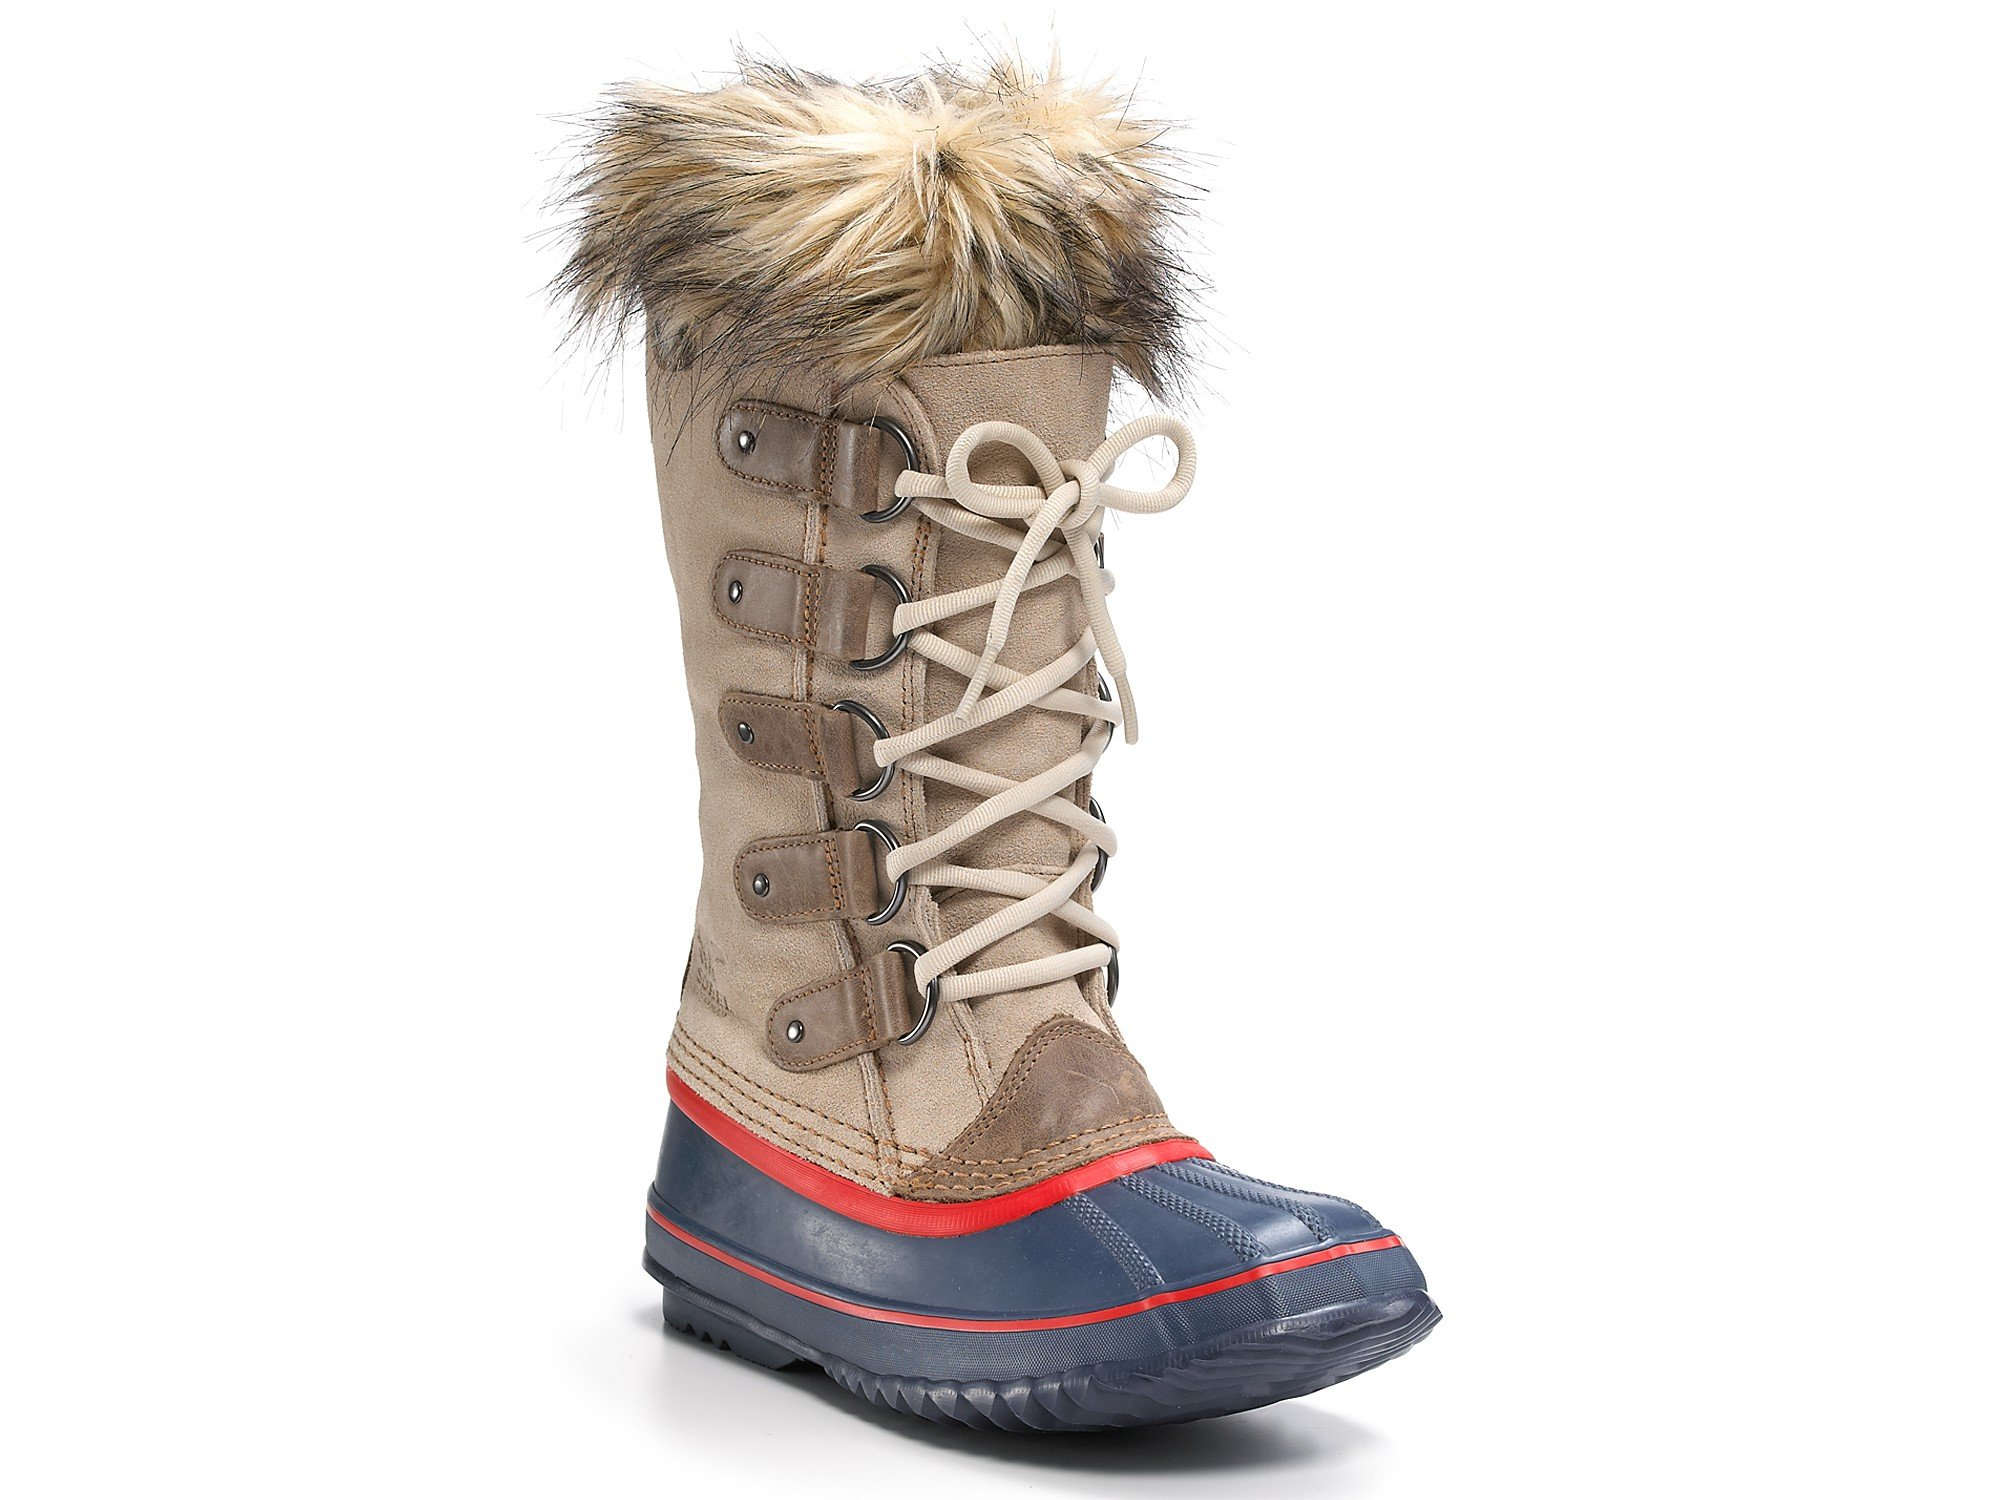 Sorel Joan Of Arctic Lace Up Boots In Beige Brown With